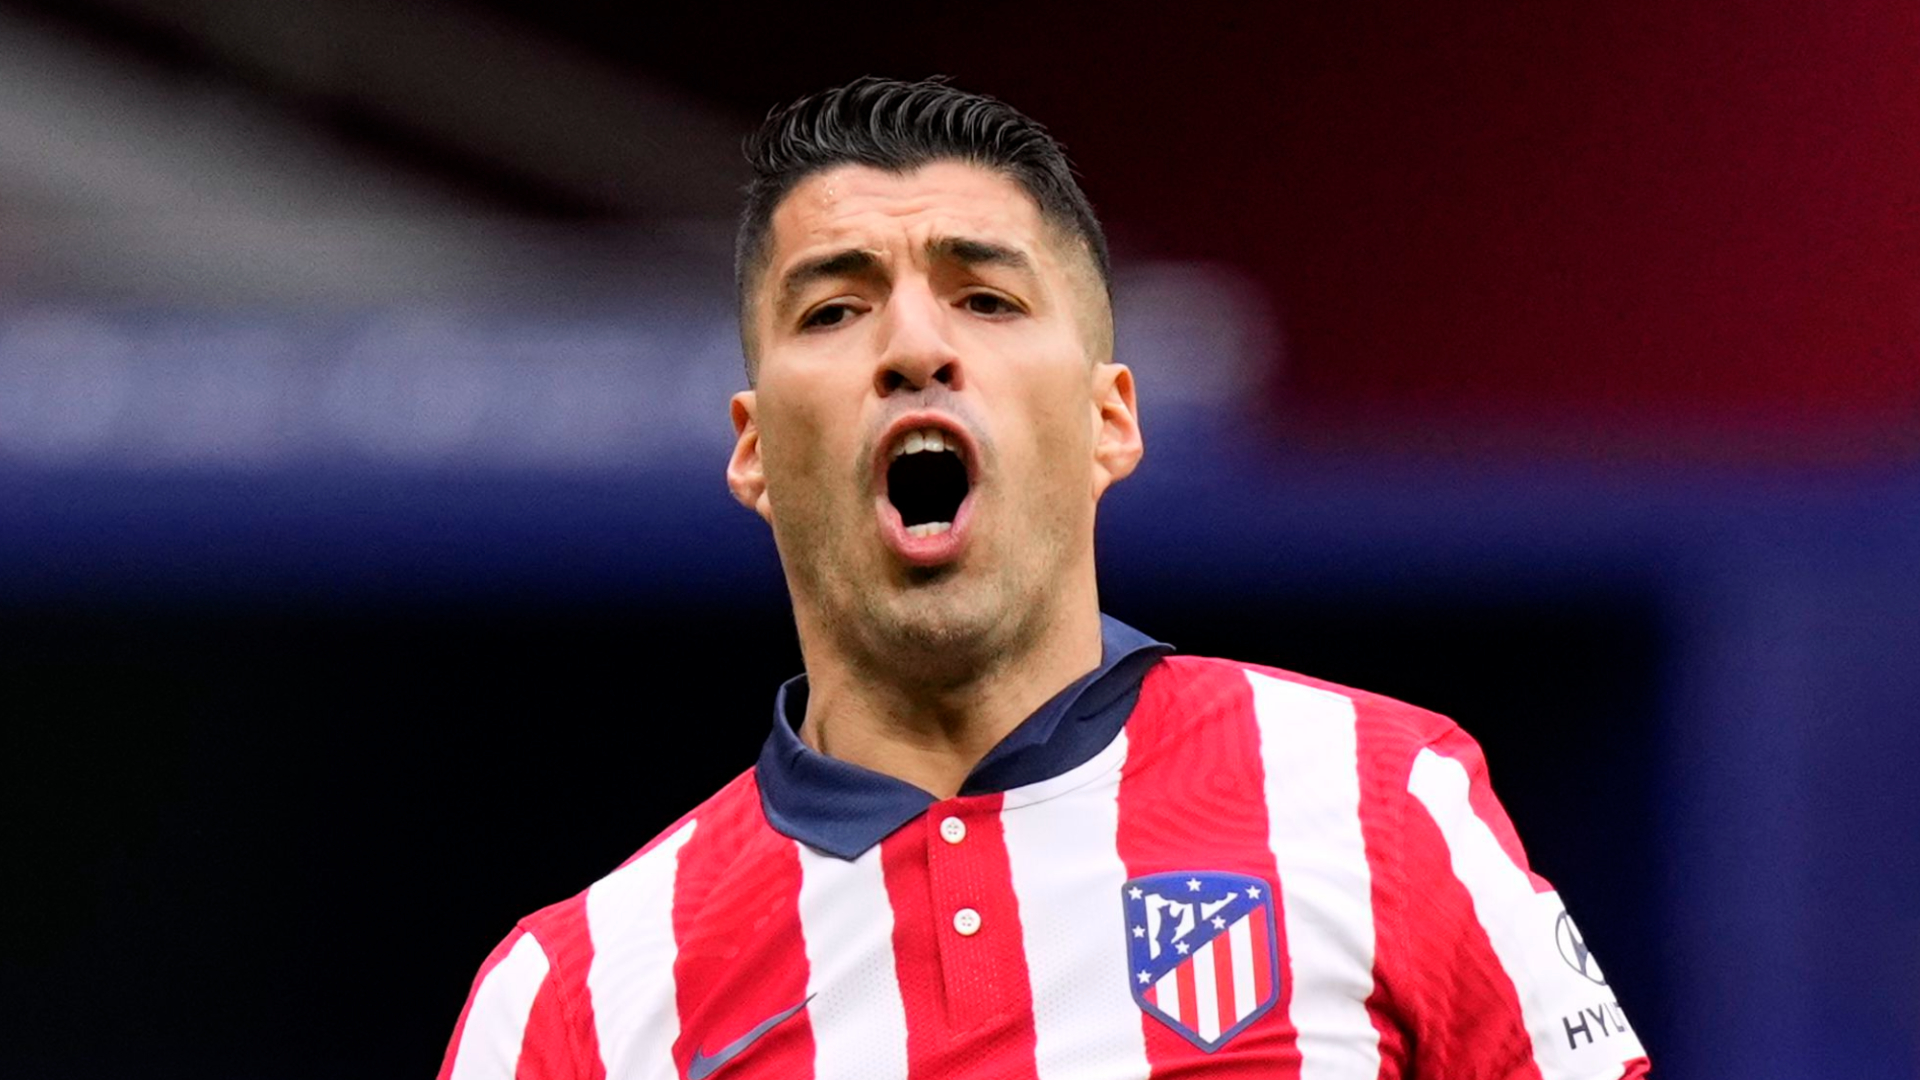 Suarez forlorn as Atletico moment of weakness keeps Real Madrid in title hunt